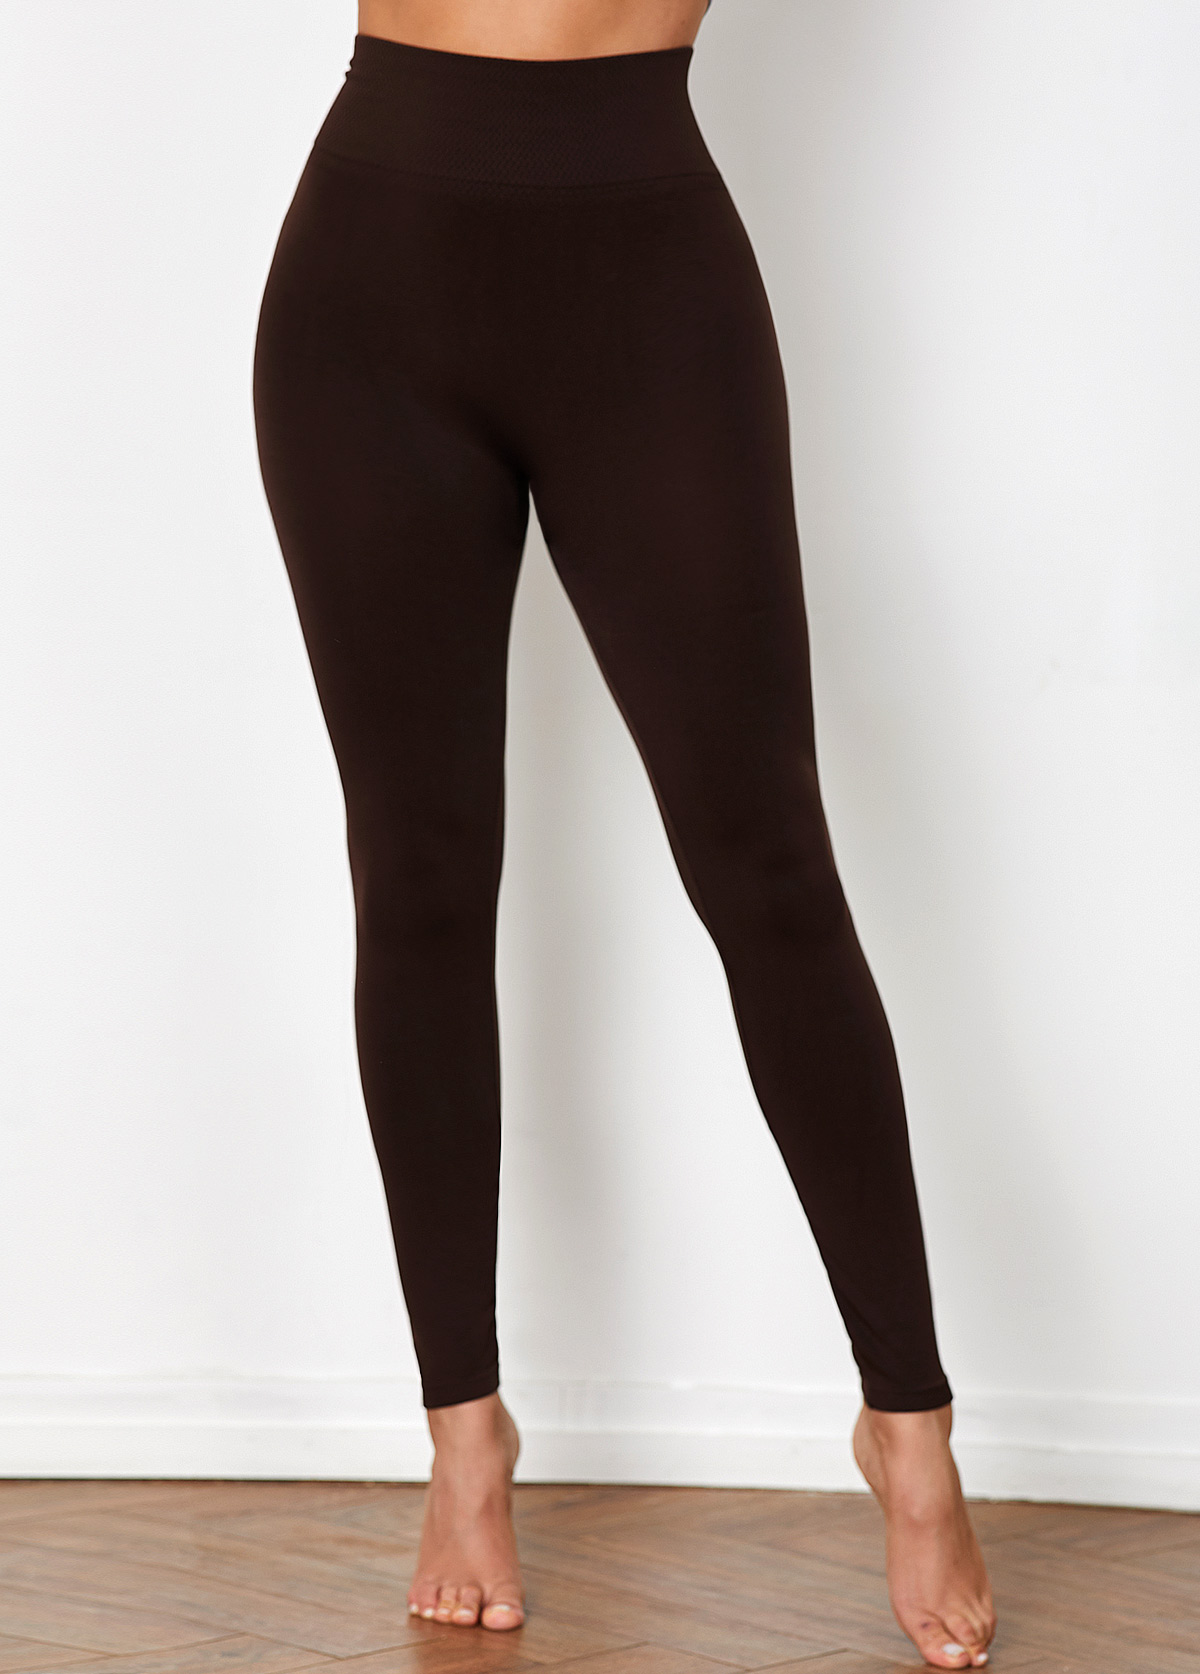 Brown High Waist Super Elastic Legging